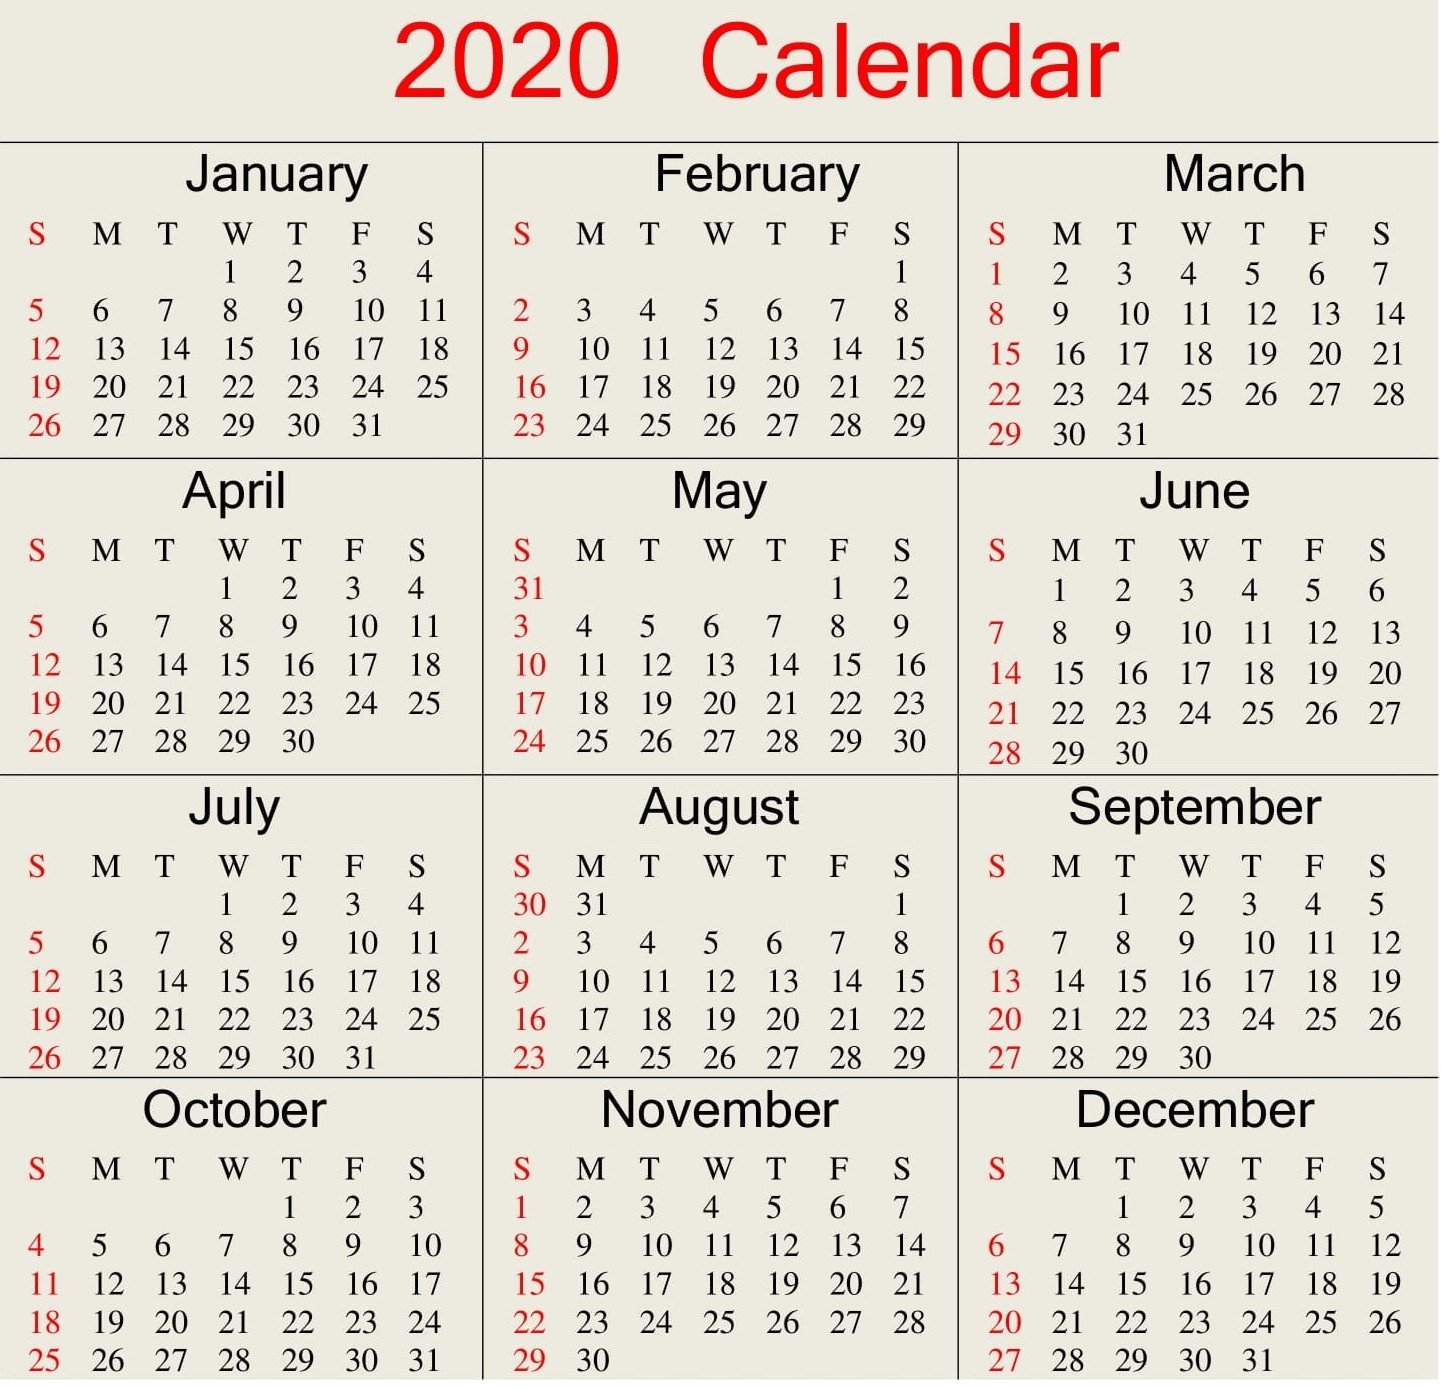 Printable 2020 Calendar Word Document - Latest Printable-Monthly Calendar With Julian Dates